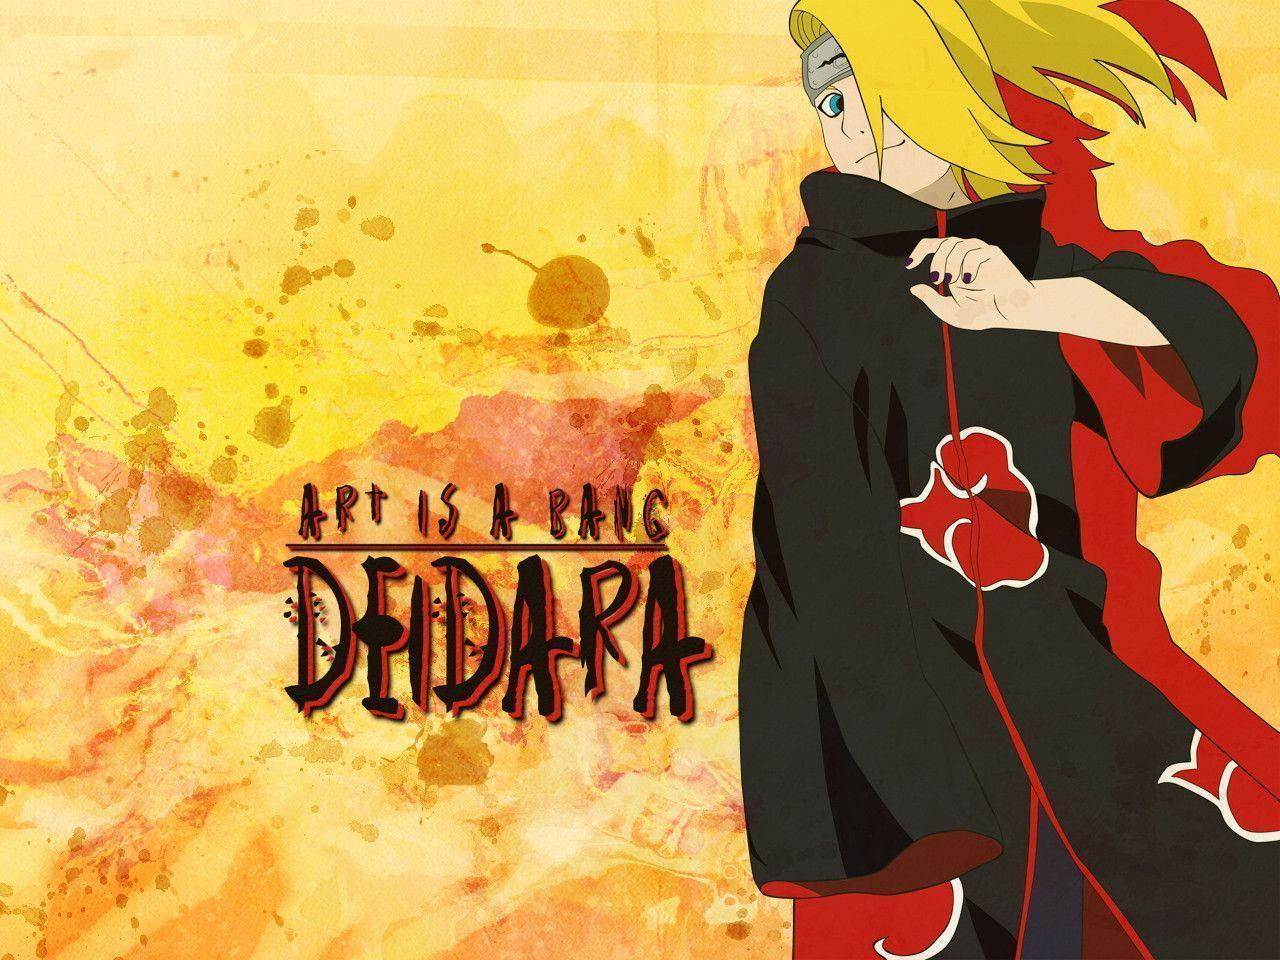 deidara wallpaper by ilacirjr - photo #19